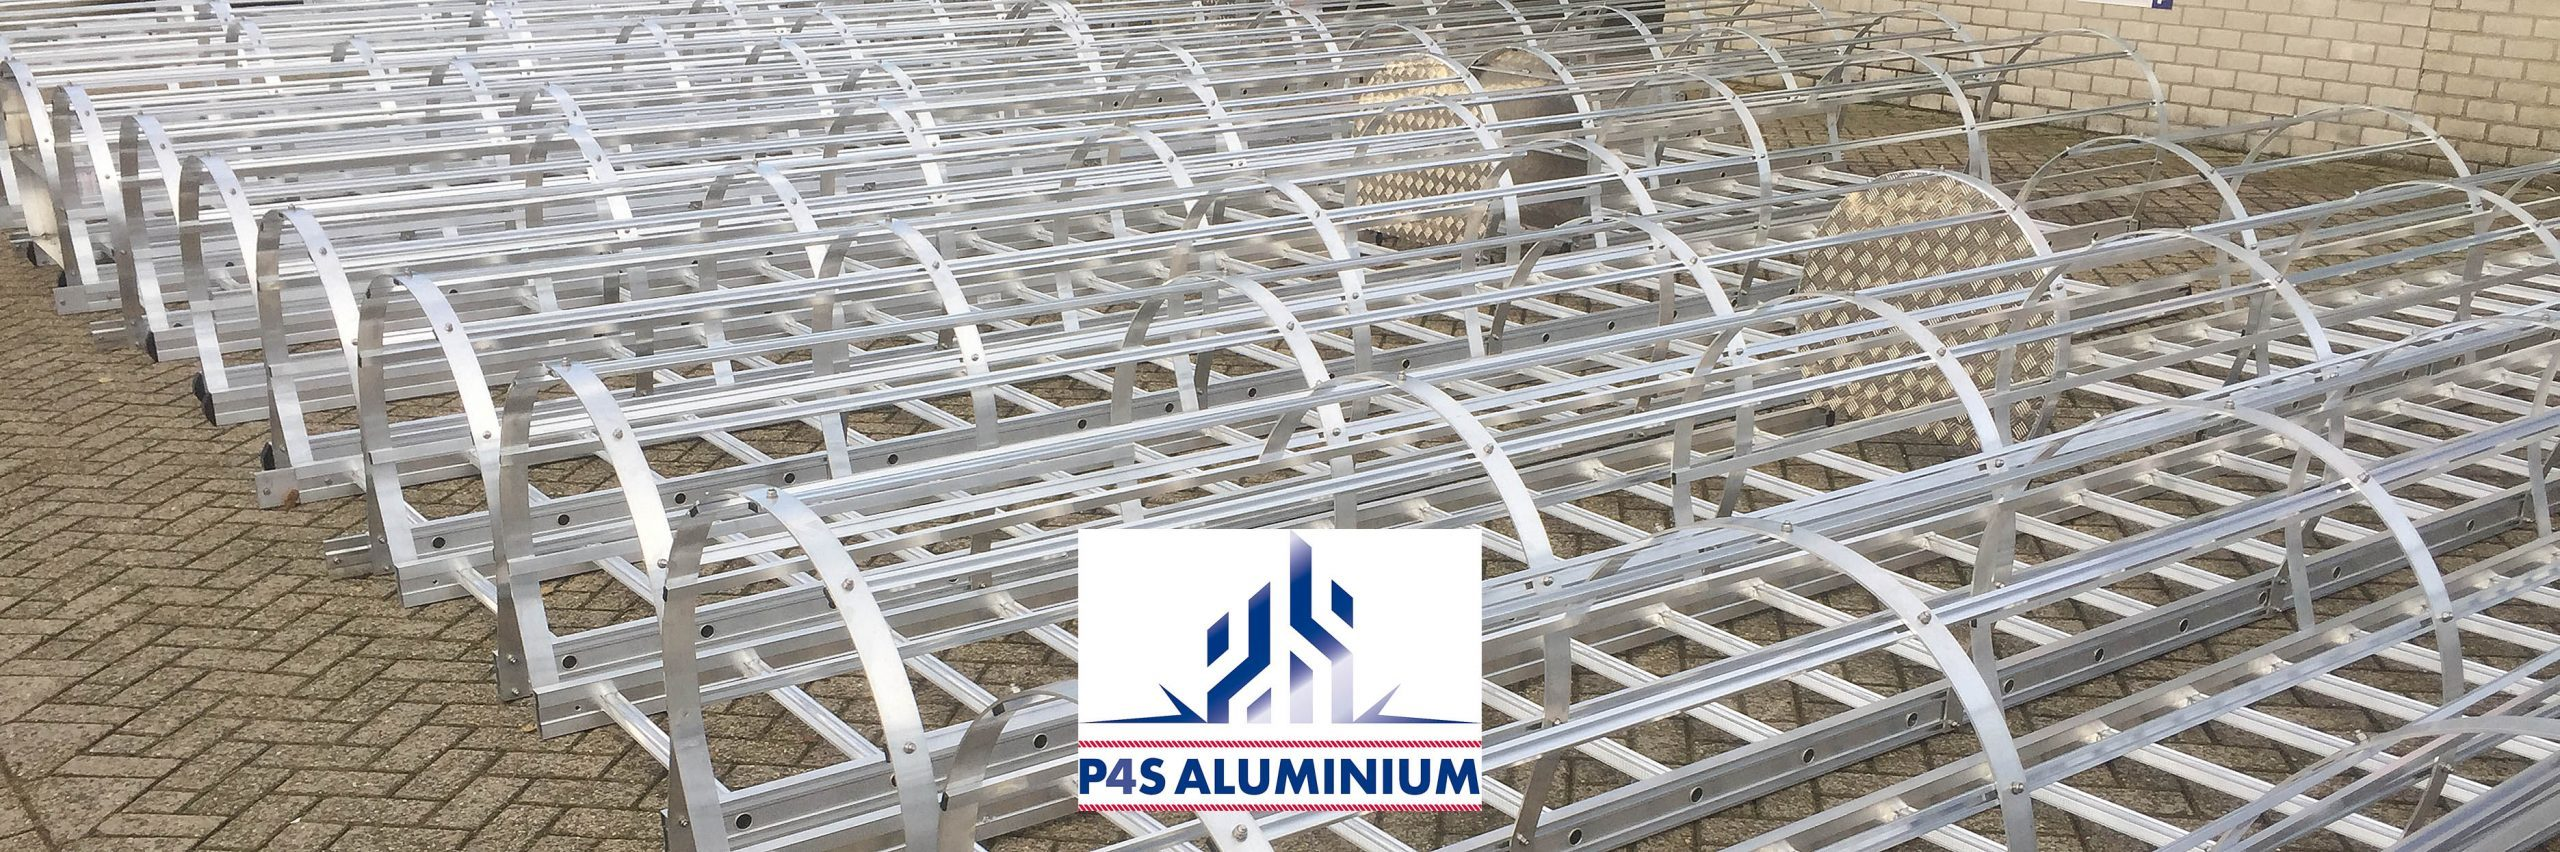 P4S Aluminium safety cage ladders